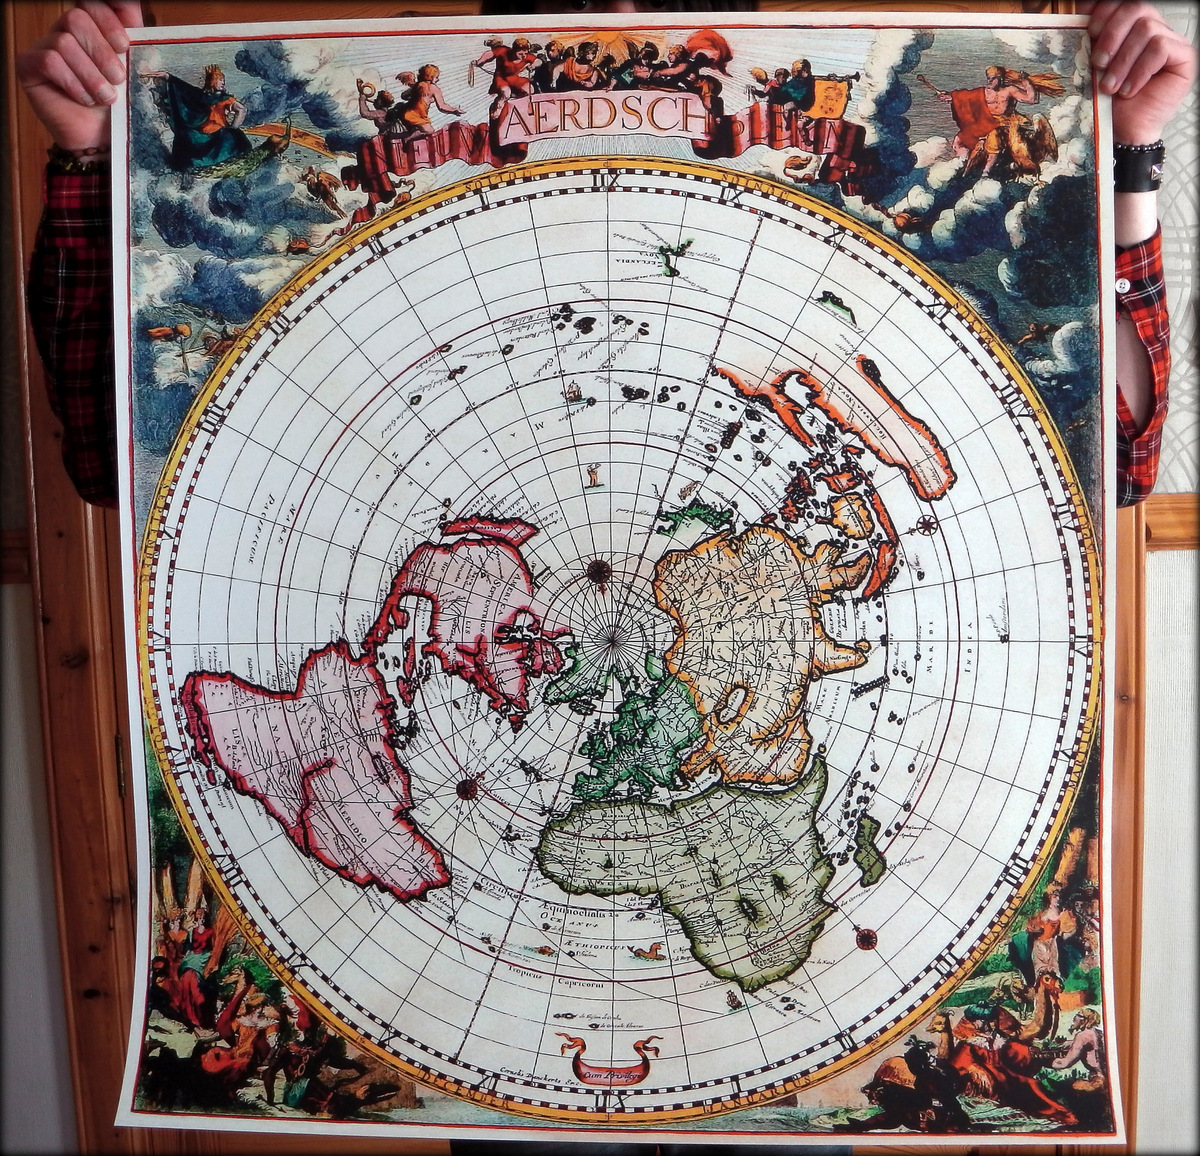 Flat earth world maps flat earth poster prints heavy duty jacobus robijn nieuw aerdsch pleyn 1700 gumiabroncs Gallery